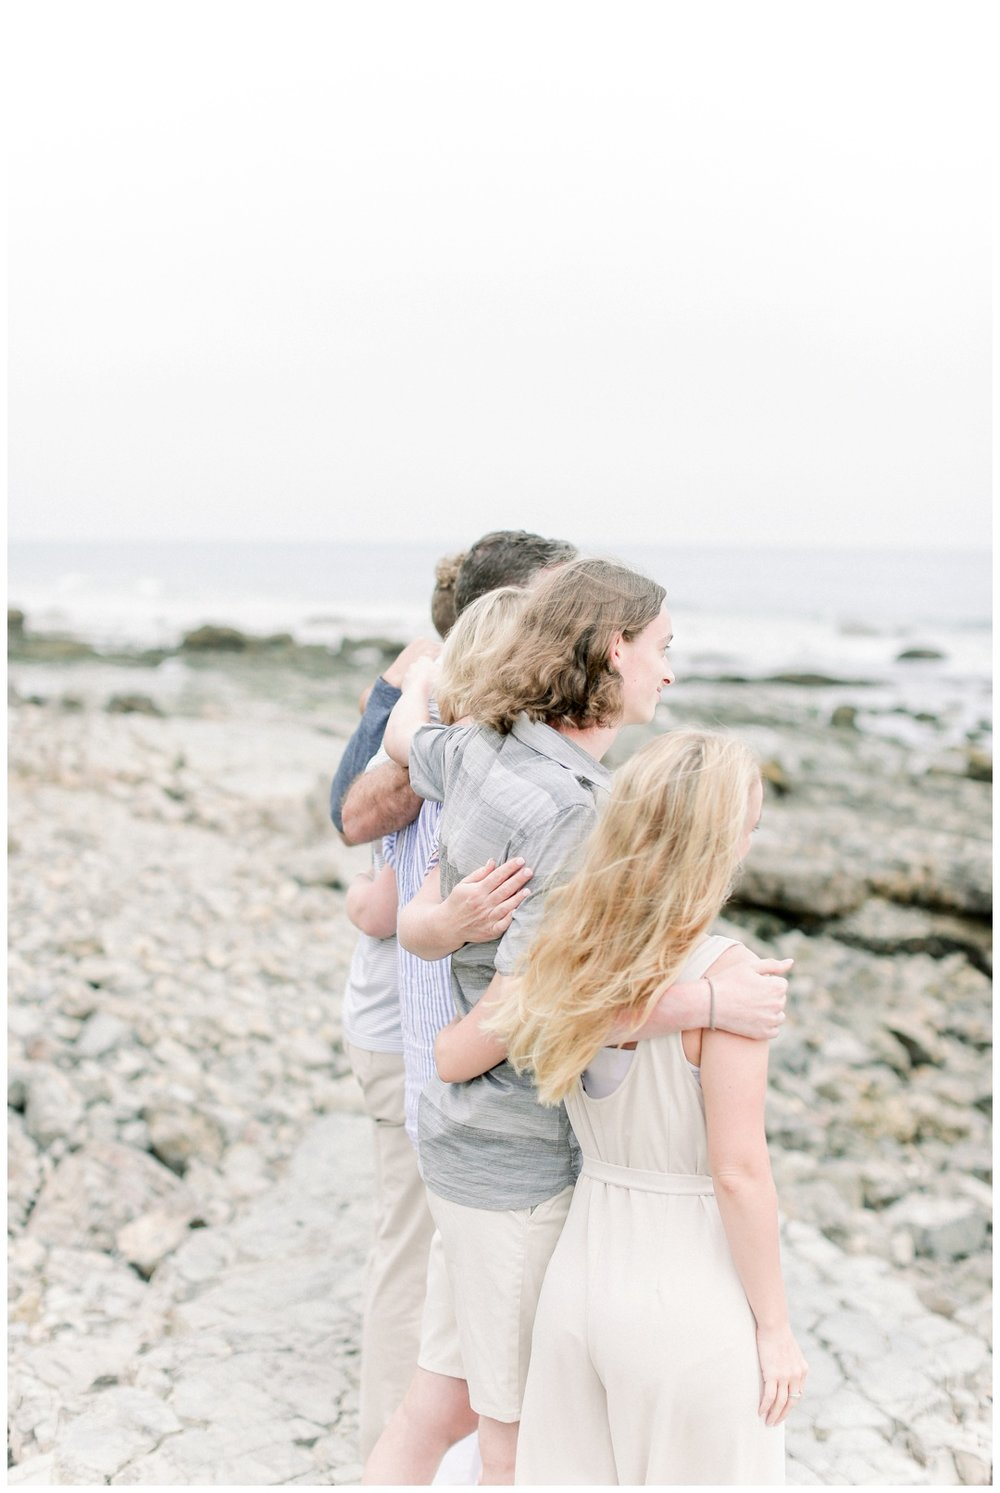 Newport_Beach_Family_Photographer_Orange_County_Family_Photography_Cori_Kleckner_Photography_Orange_County_Family_Photographer_Beach_Family_Session__1221.jpg